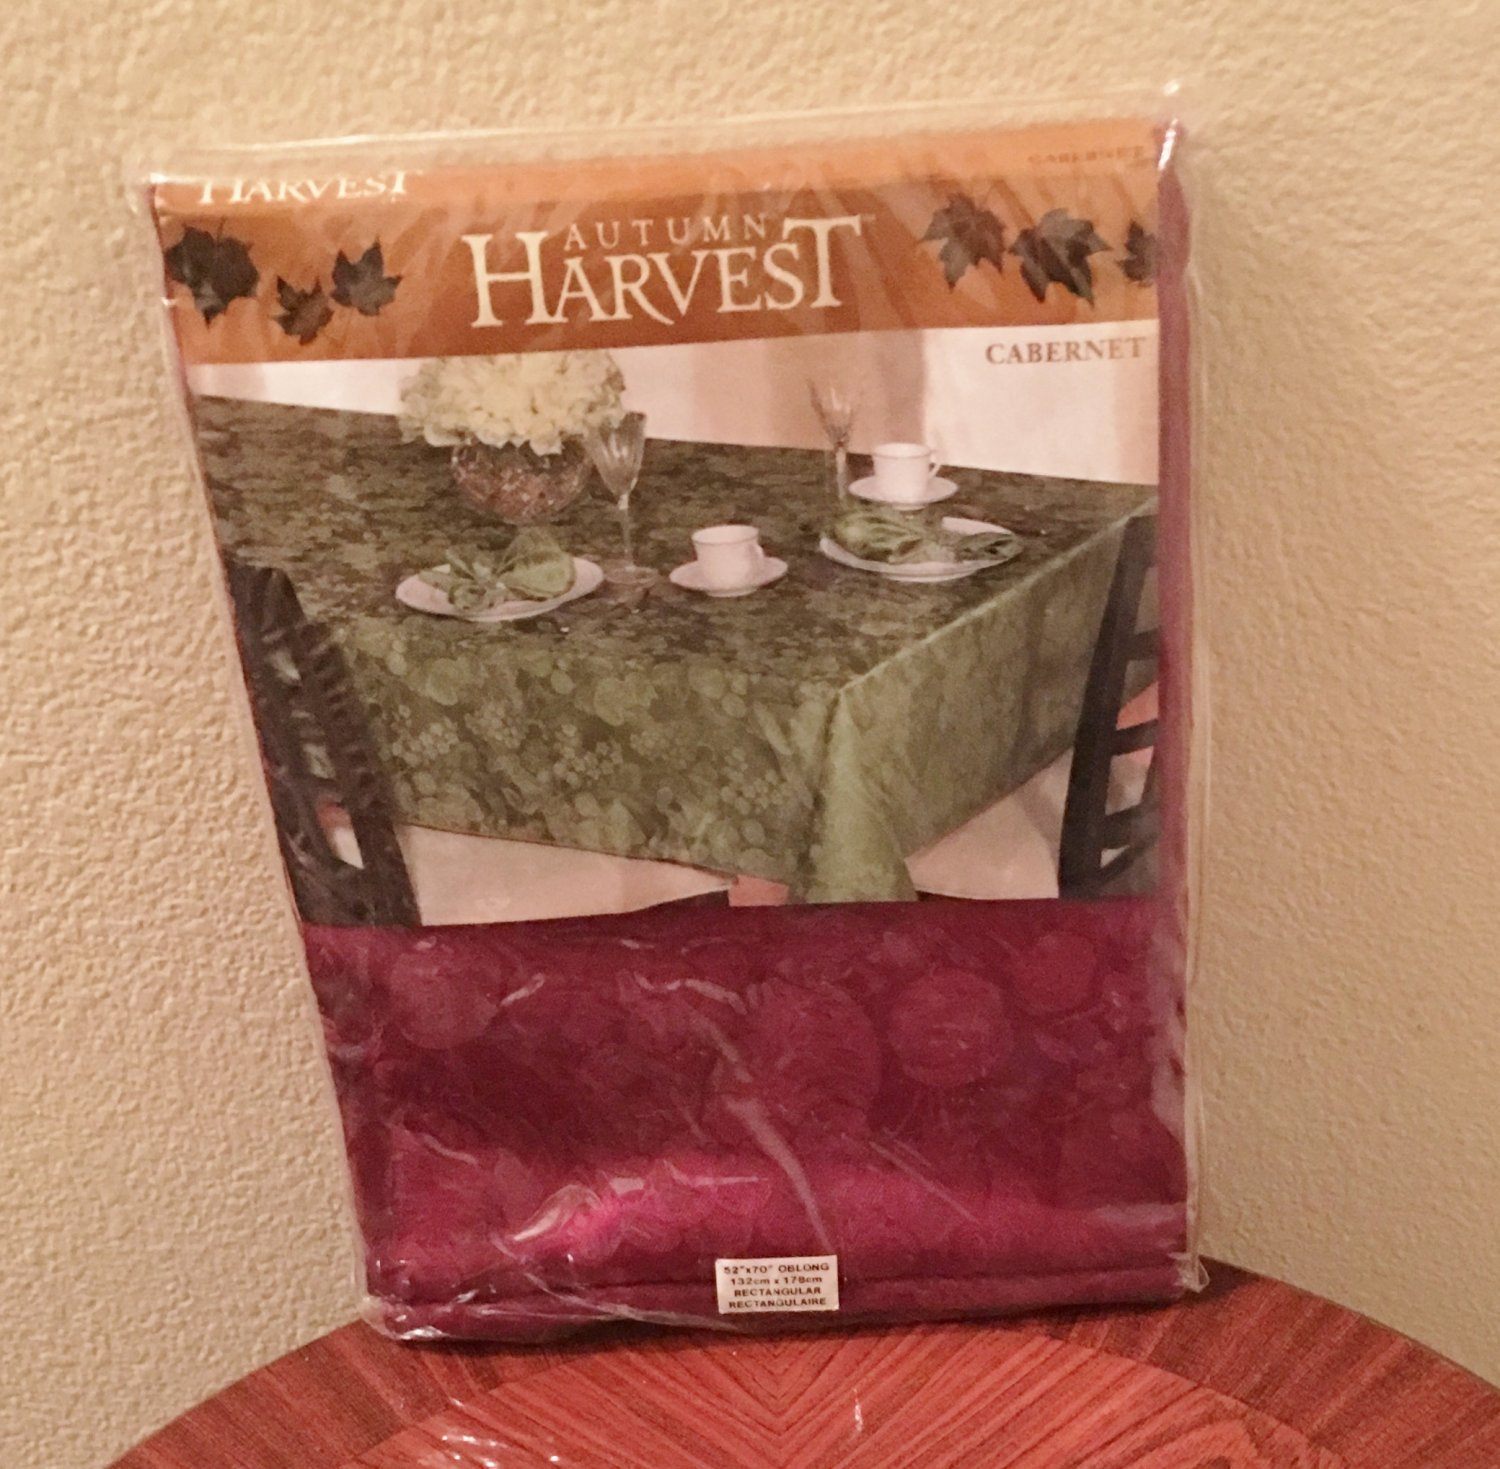 New DAMASK TABLECLOTH Autumn Harvest Rectangle 52x70 CABERNET RED Dining Cotton Blend